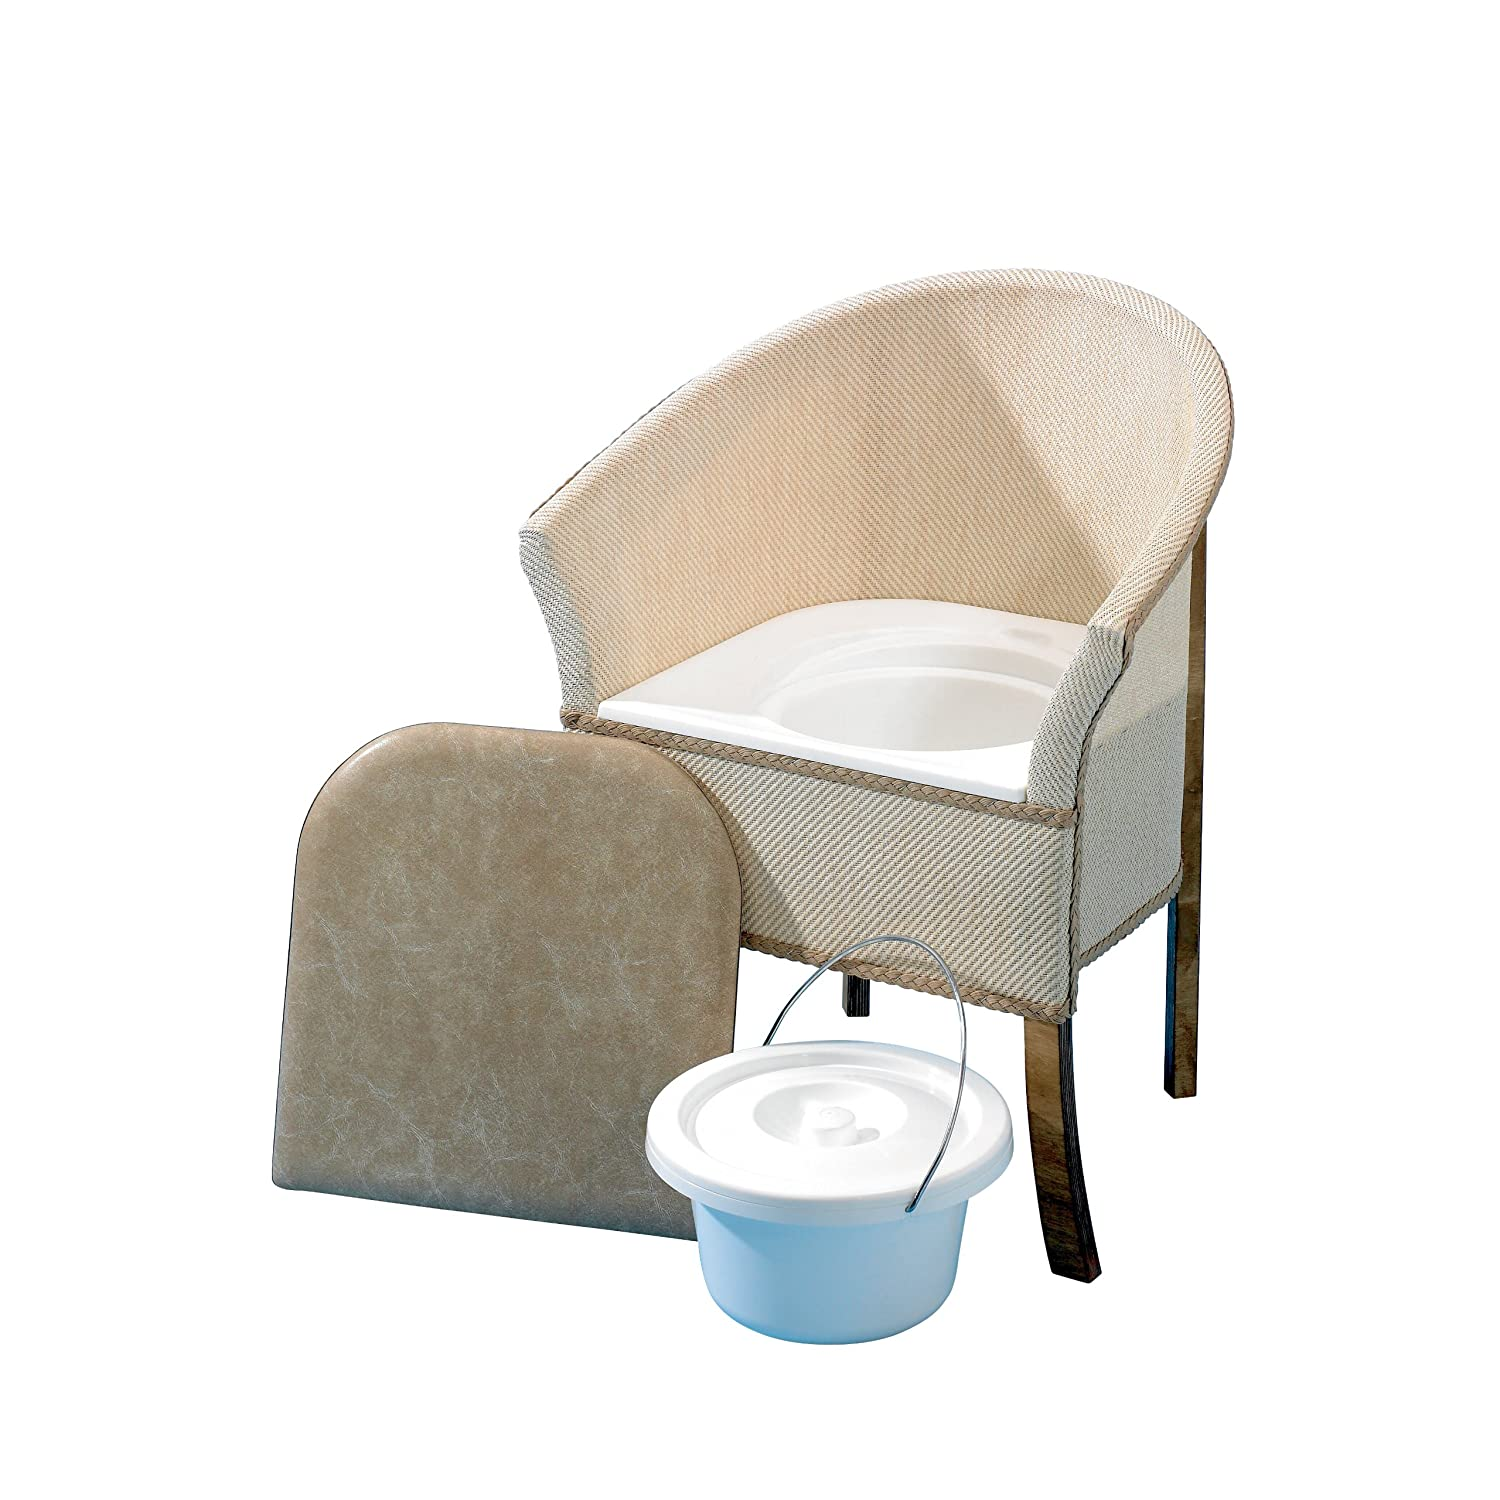 Homecraft Bedroom Commode Chair by Patterson Medical